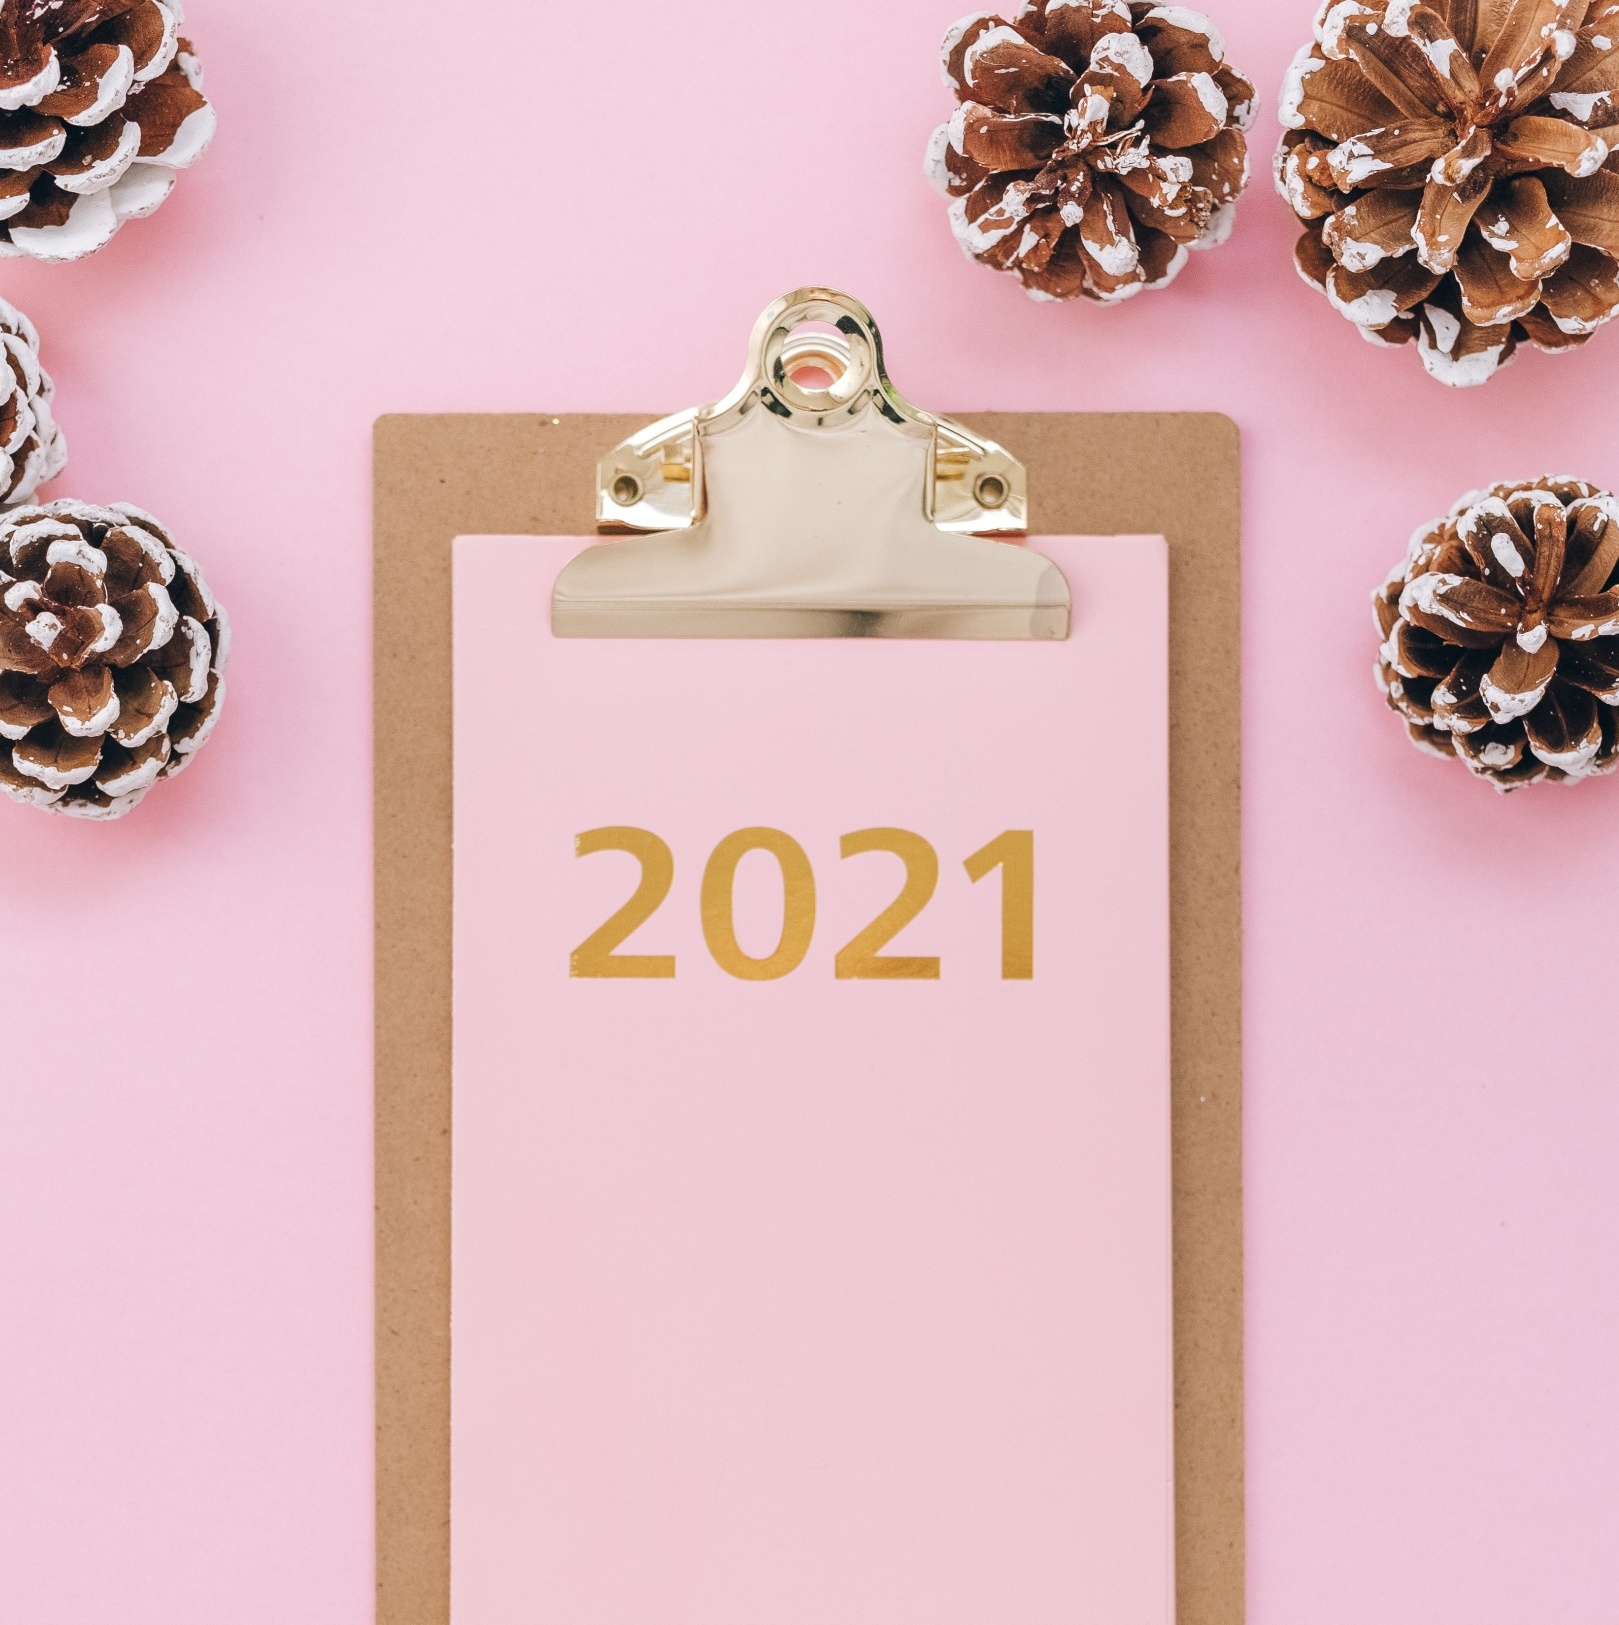 Cheers to 2021! My Focus + 12 Quantitative Goals